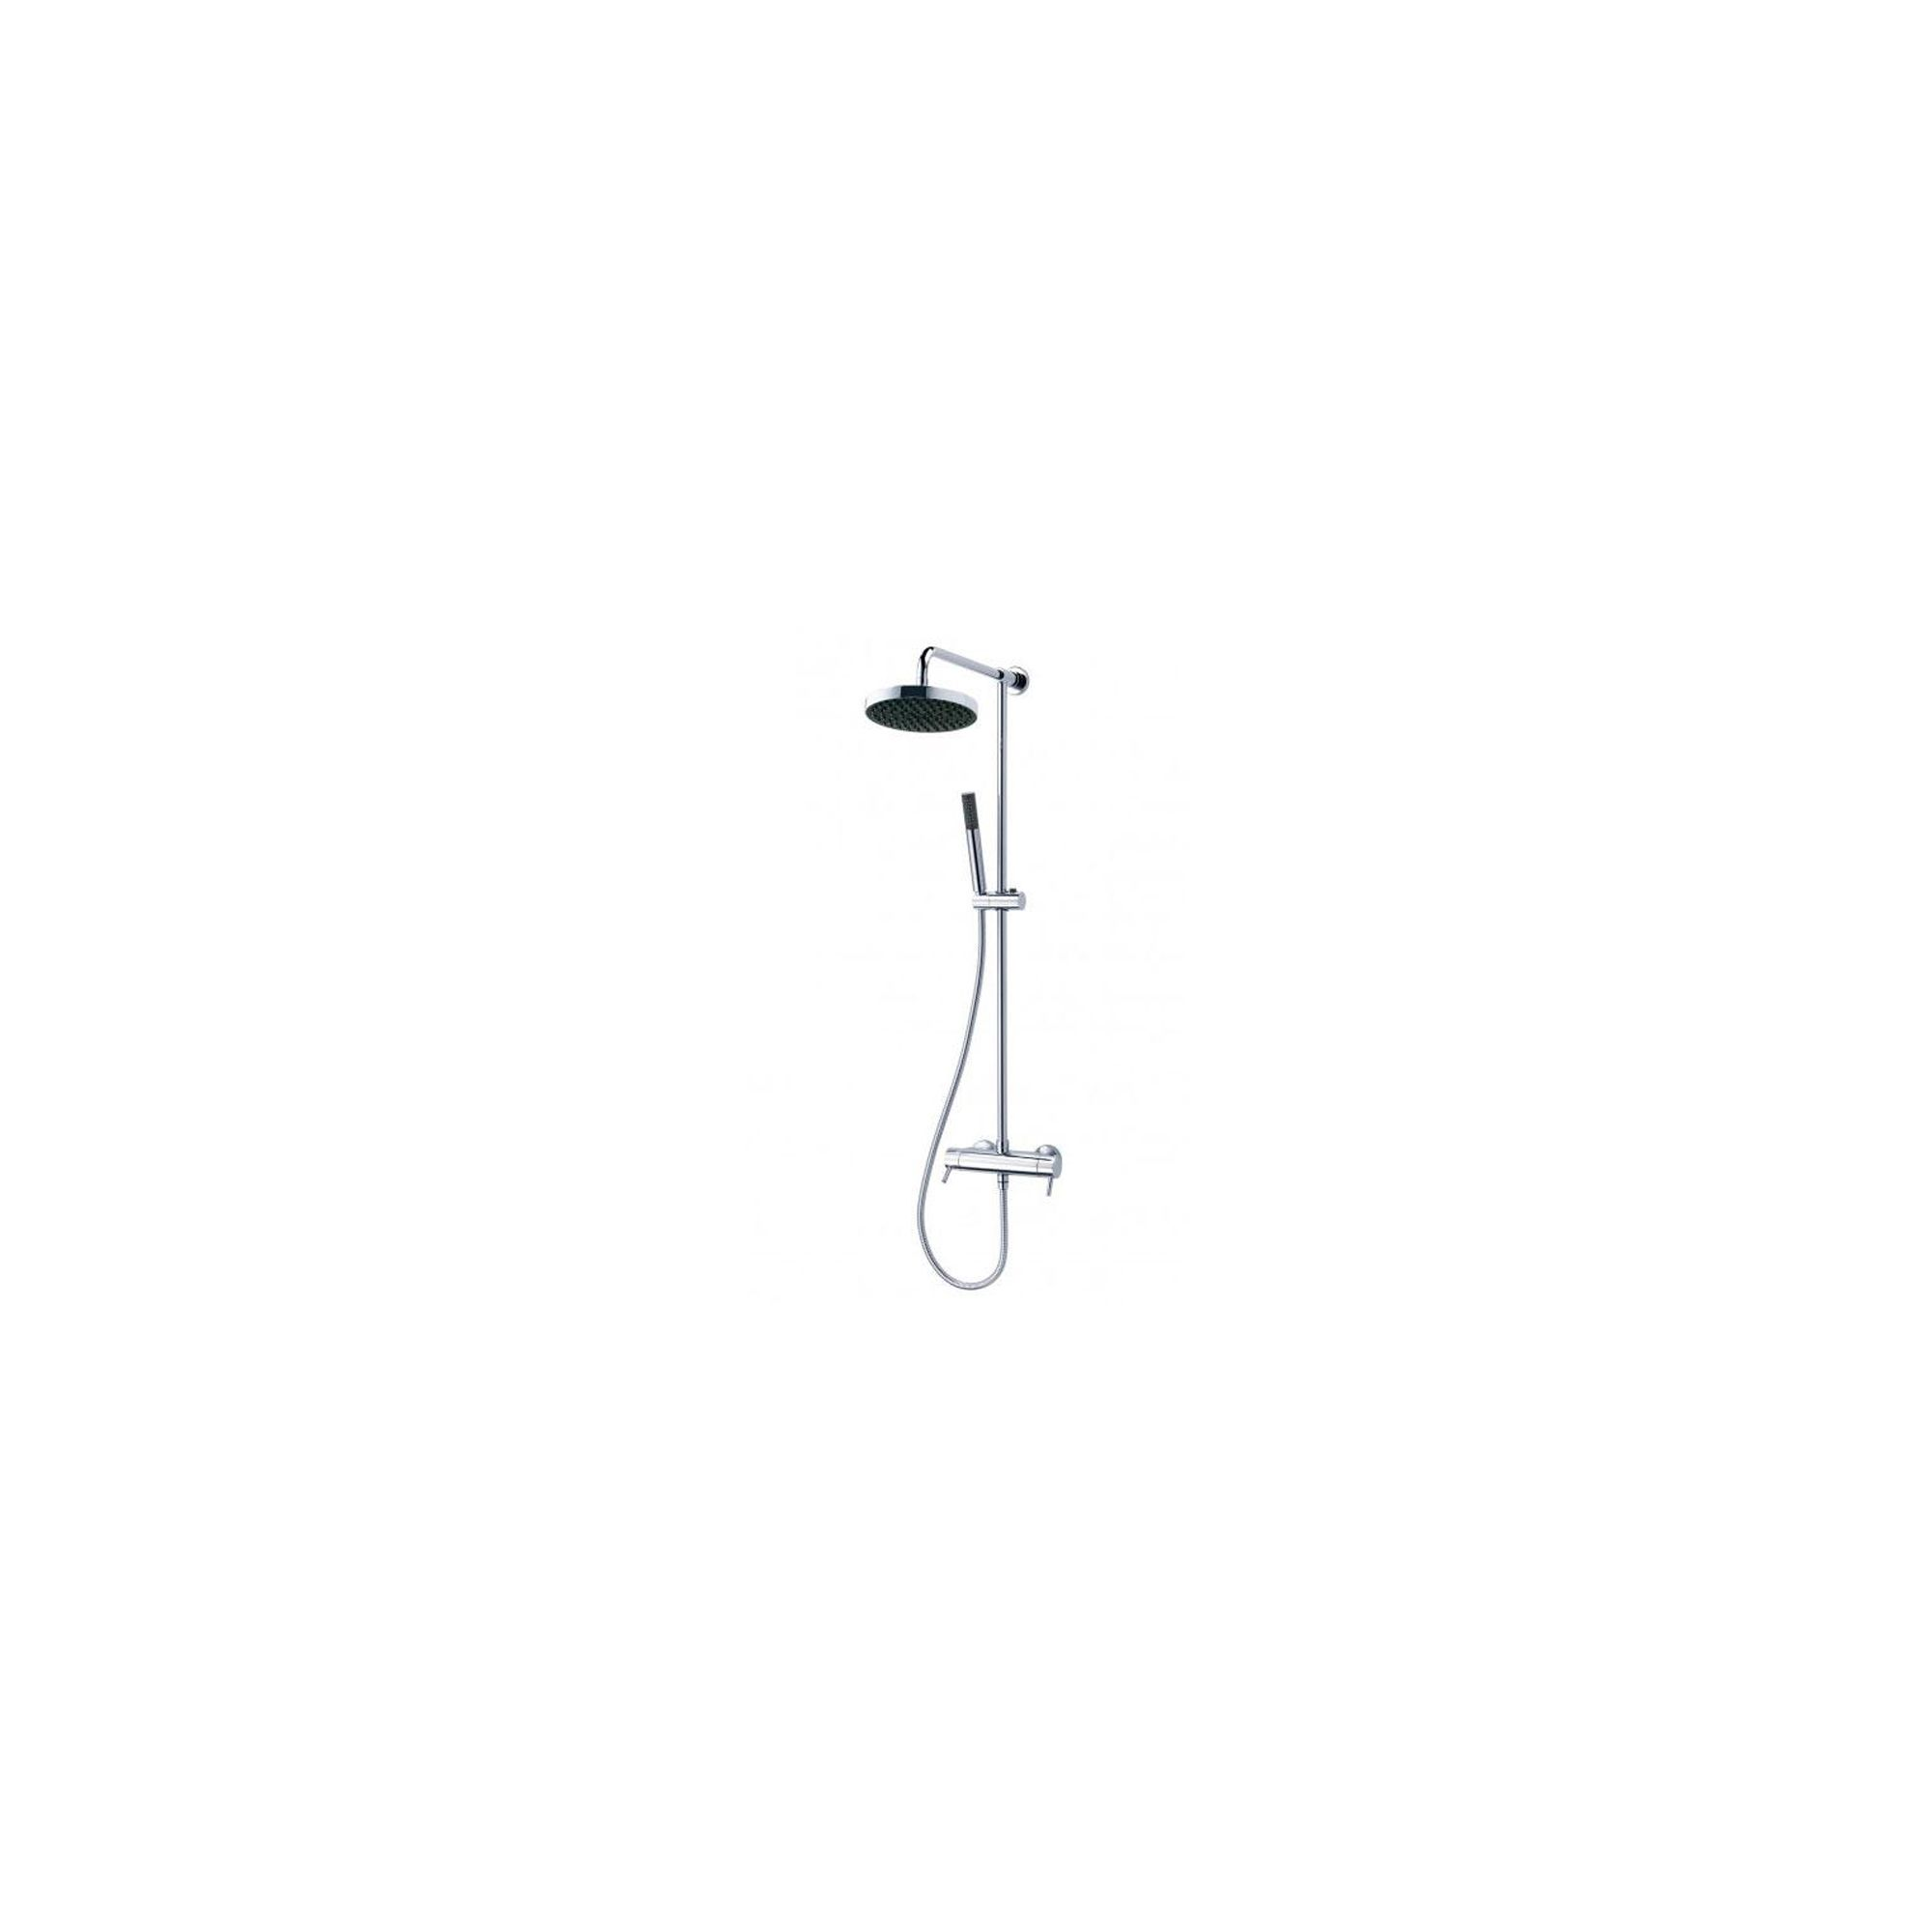 Triton Thames Thermostatic Bar Mixer Shower with Diverter Chrome at Tesco Direct